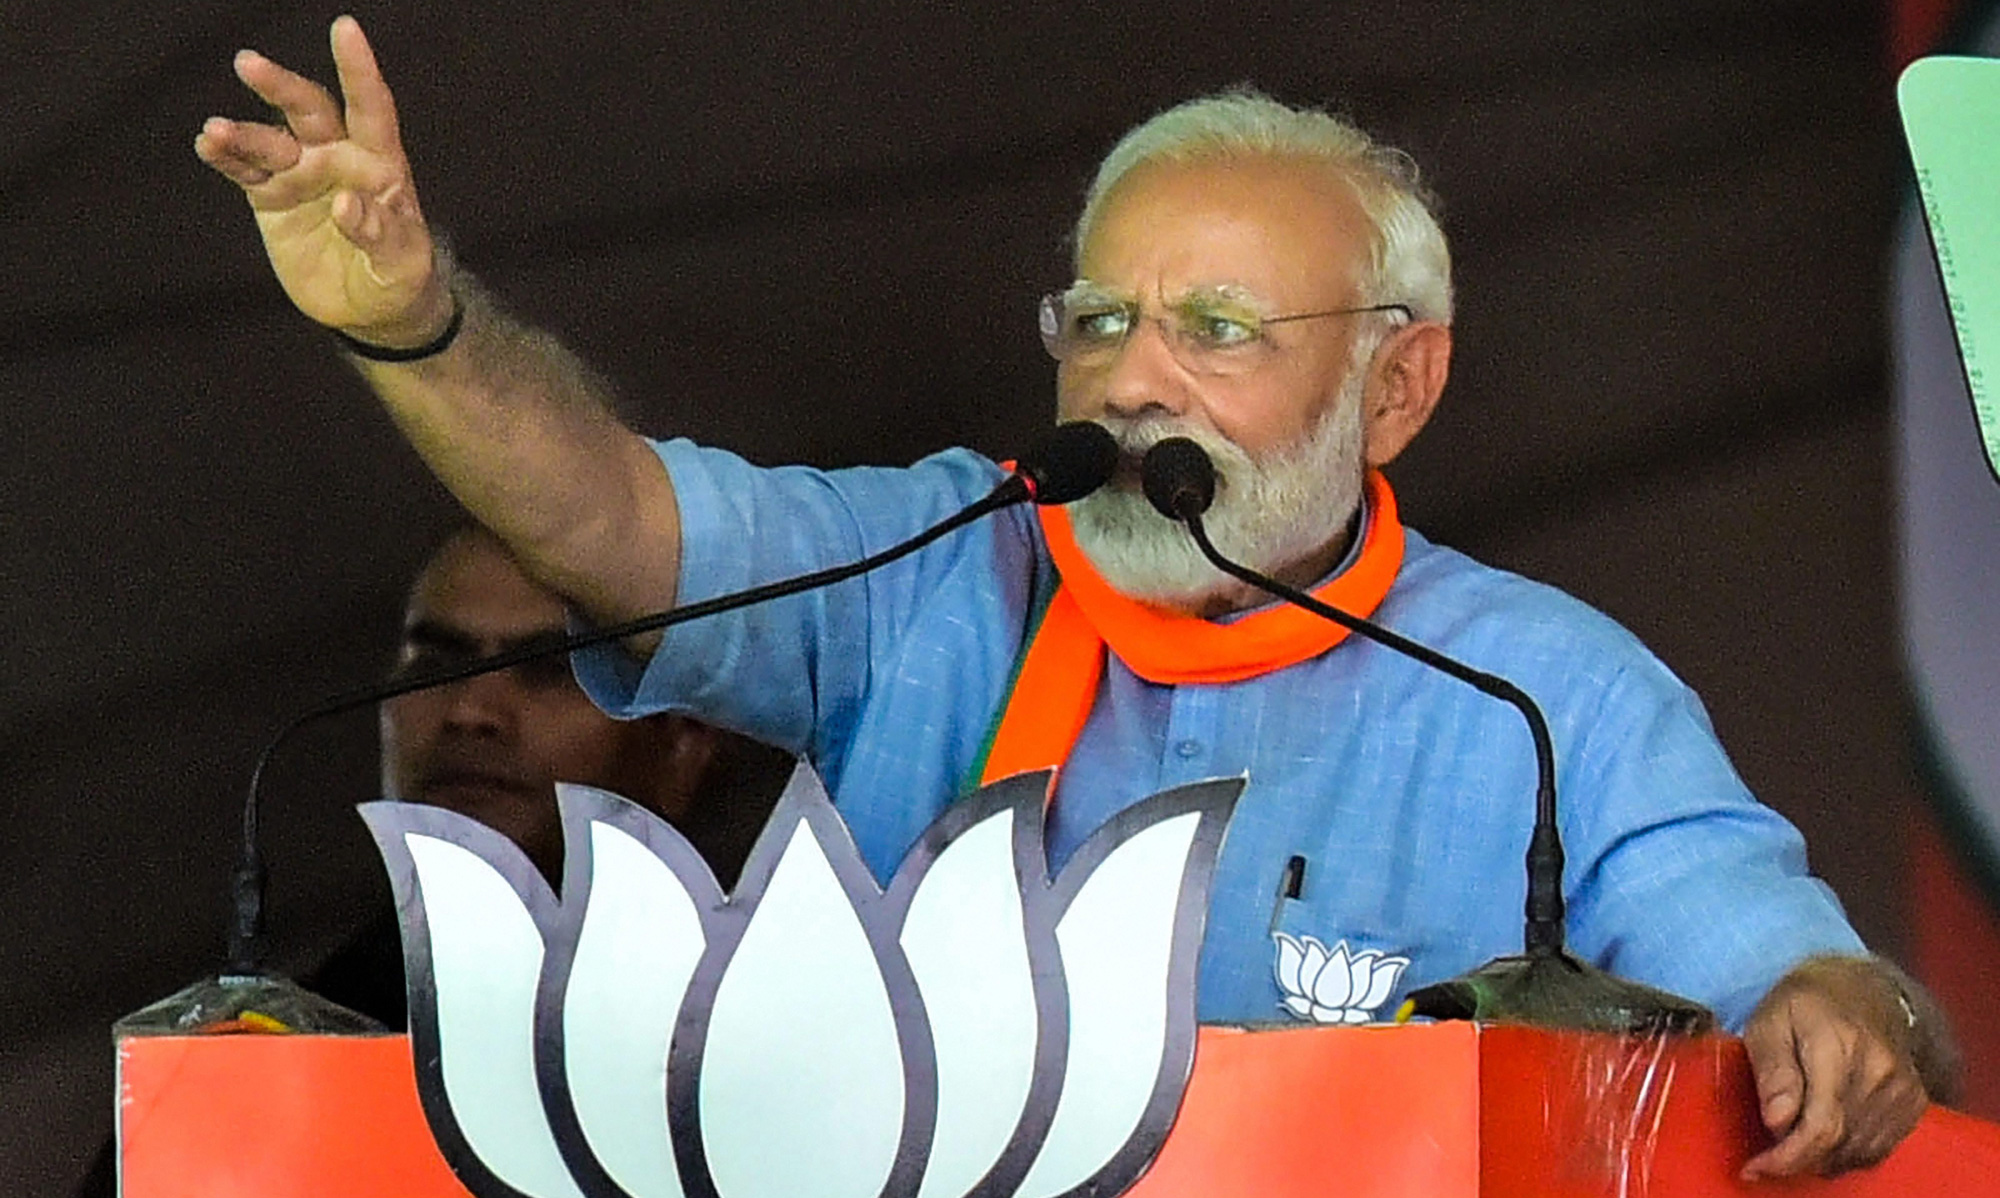 Prime Minister Narendra Modi gestures as he speaks at an election campaign rally during the ongoing general elections, in Aligarh, on Sunday, April 14, 2019.